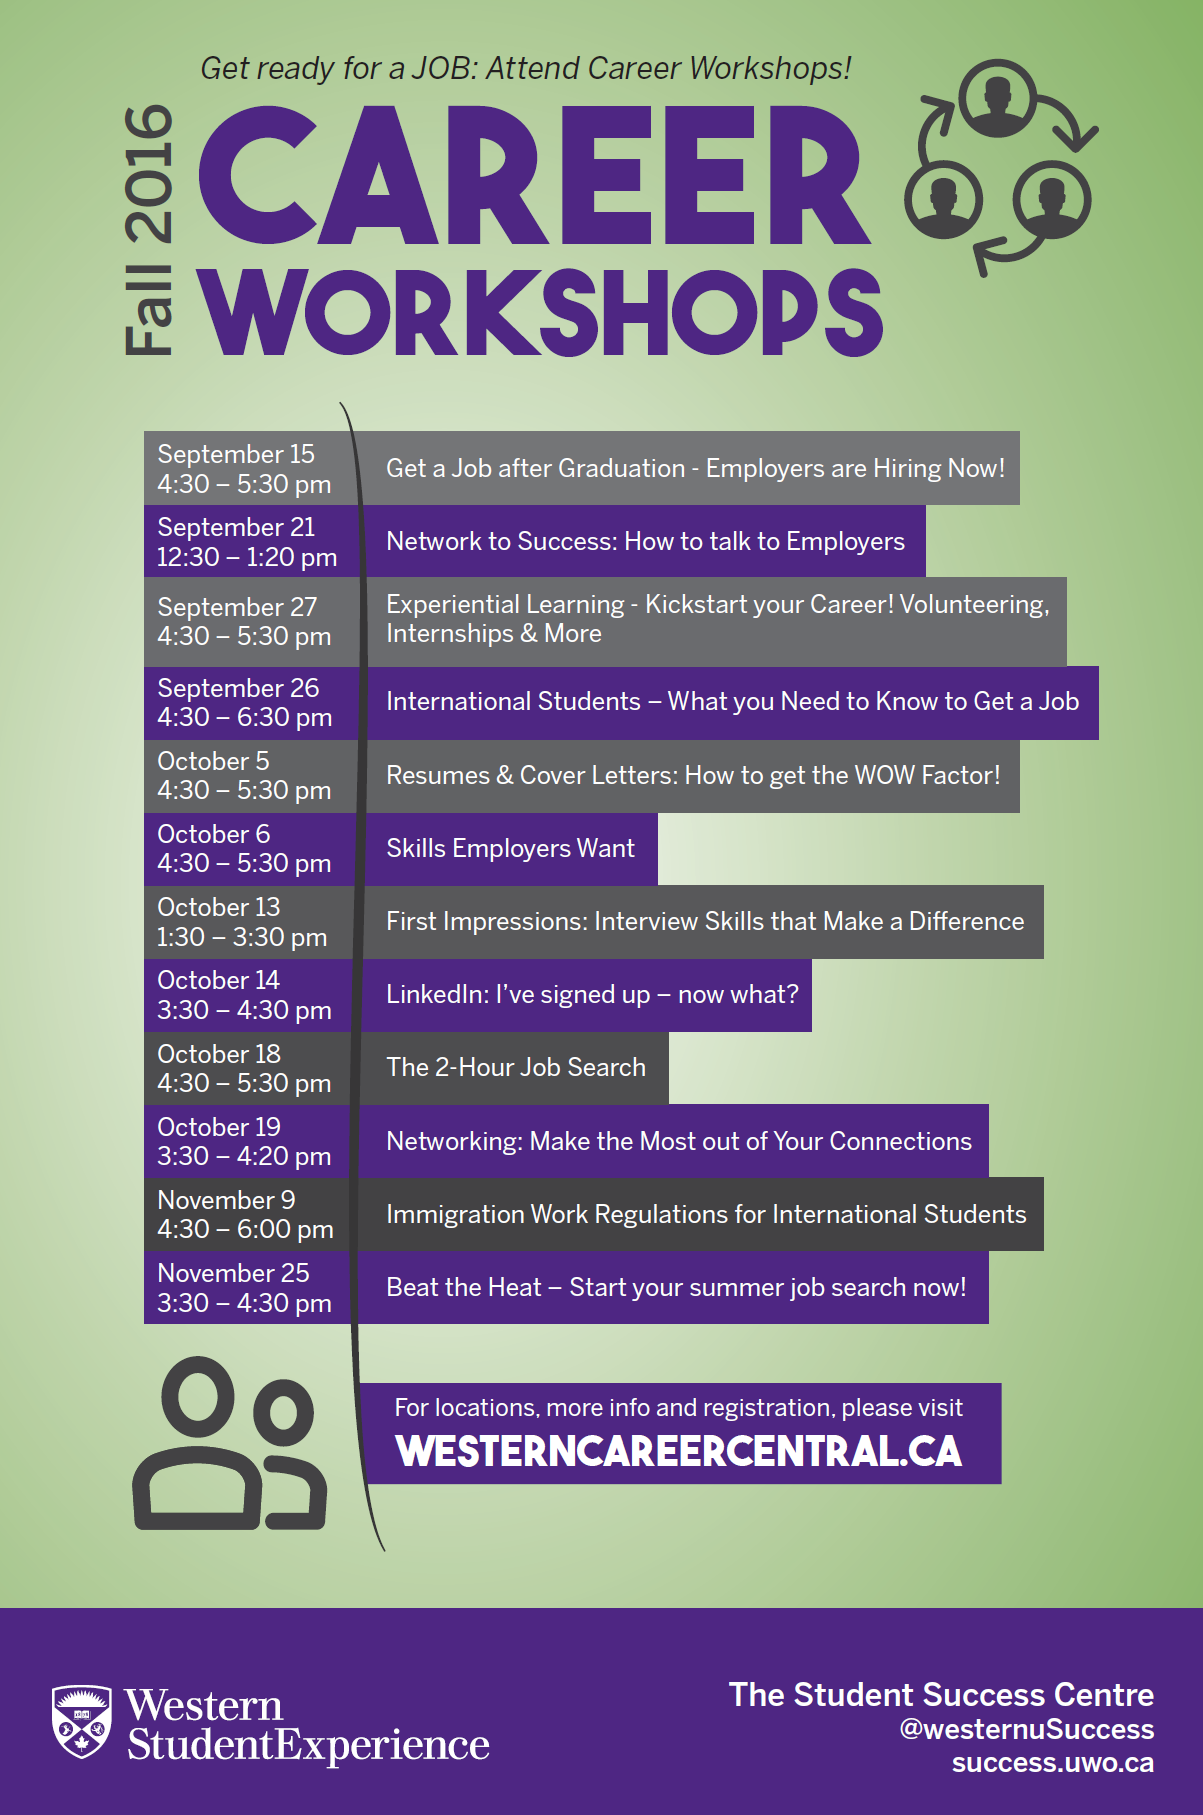 Fall Career Workshops at Career Central